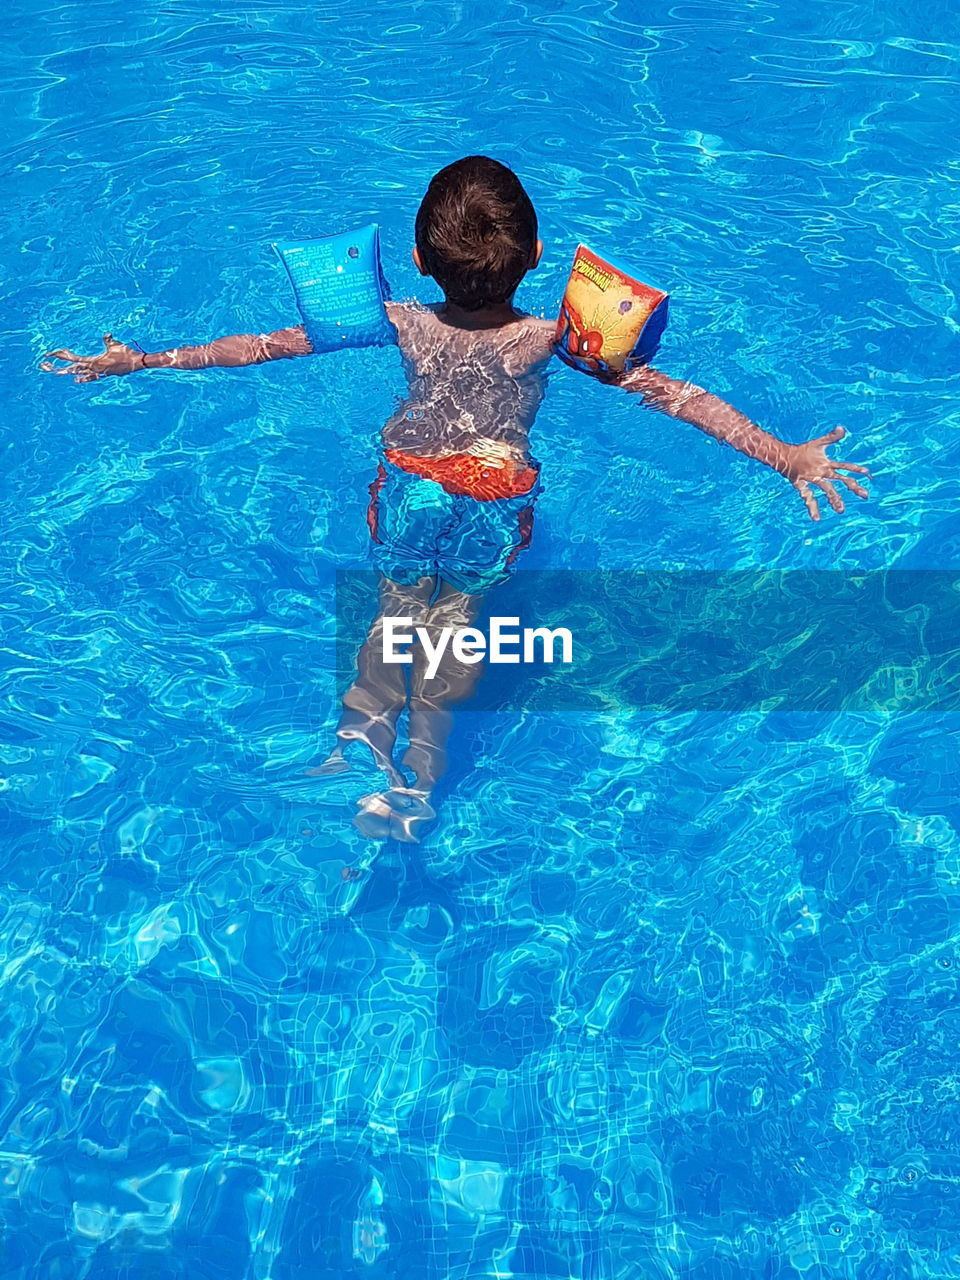 HIGH ANGLE VIEW OF BOY ON SWIMMING POOL